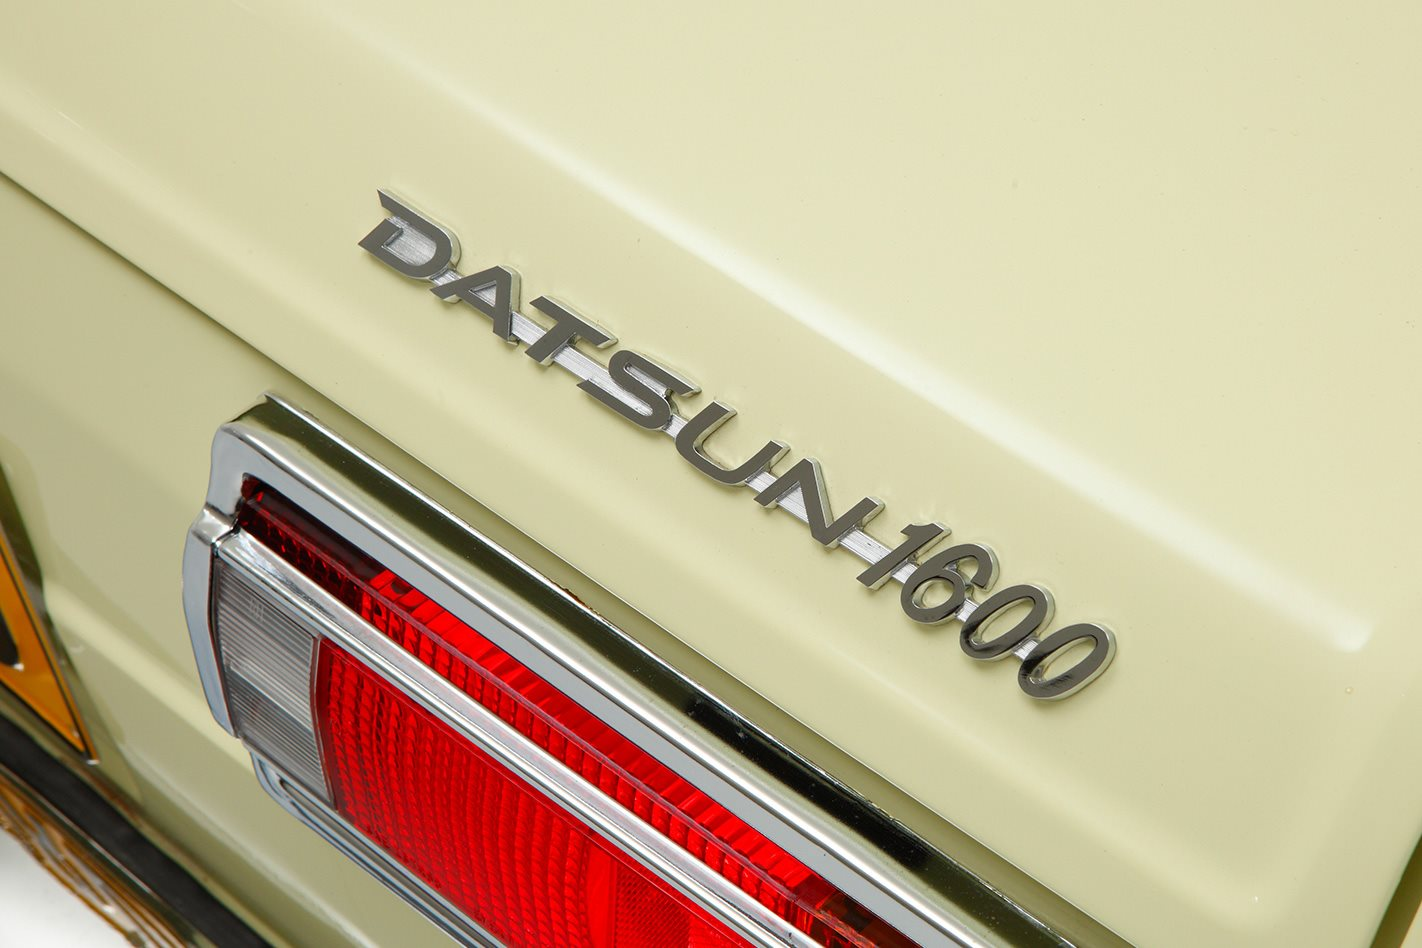 Datsun 1600 badge